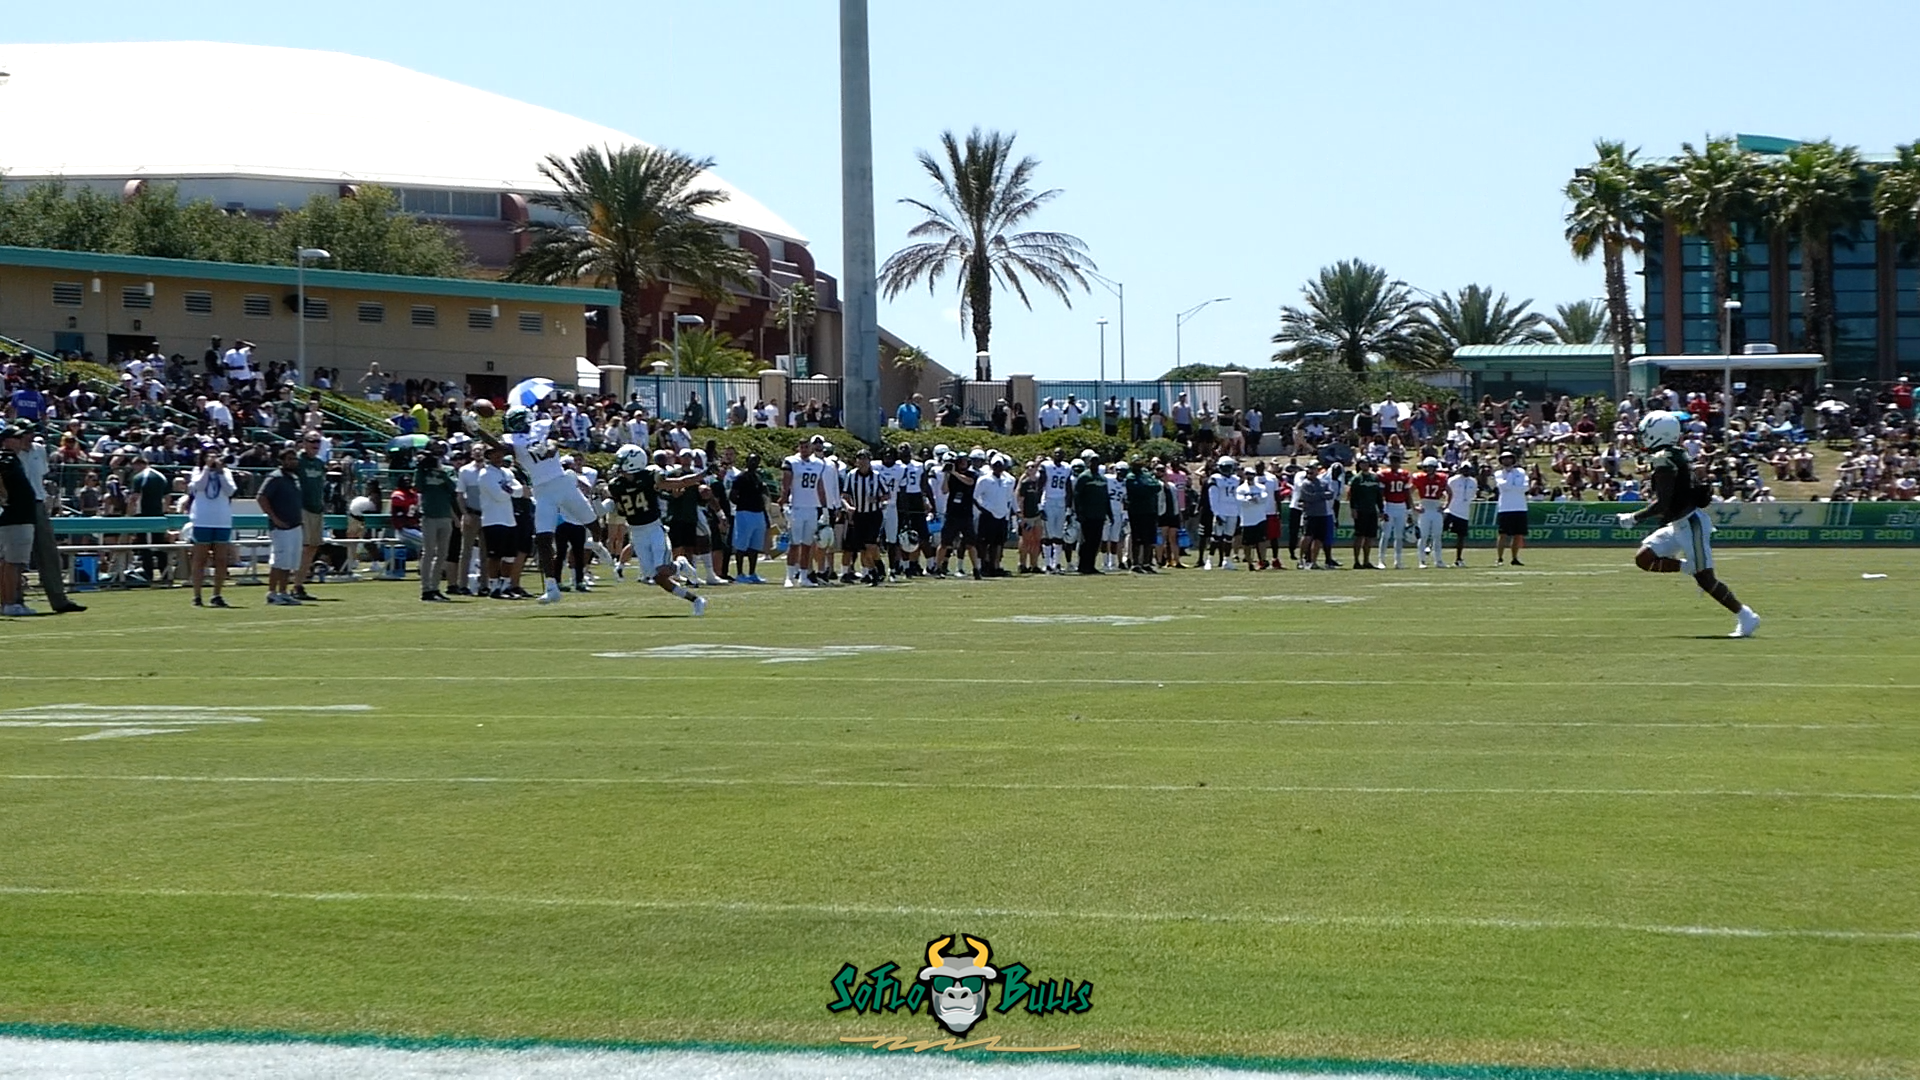 VIDEO: USF WR DeVontres Dukes Sick On-Handed Catch During the 2018 Spring Game by Matthew Manuri | SoFloBulls.com (1920x1080)